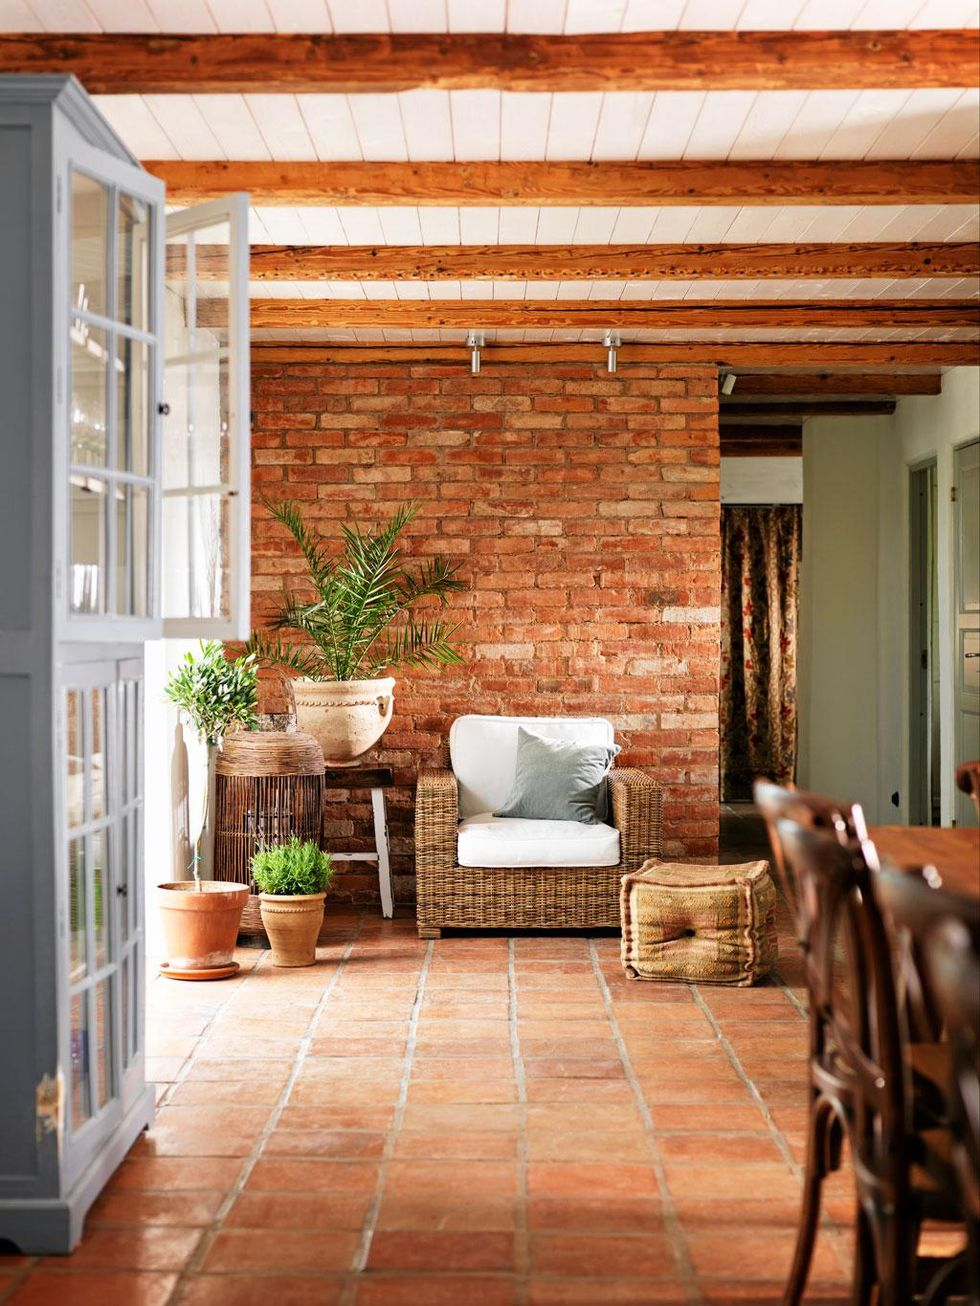 Interior Decor Trends for 2017: terracotta